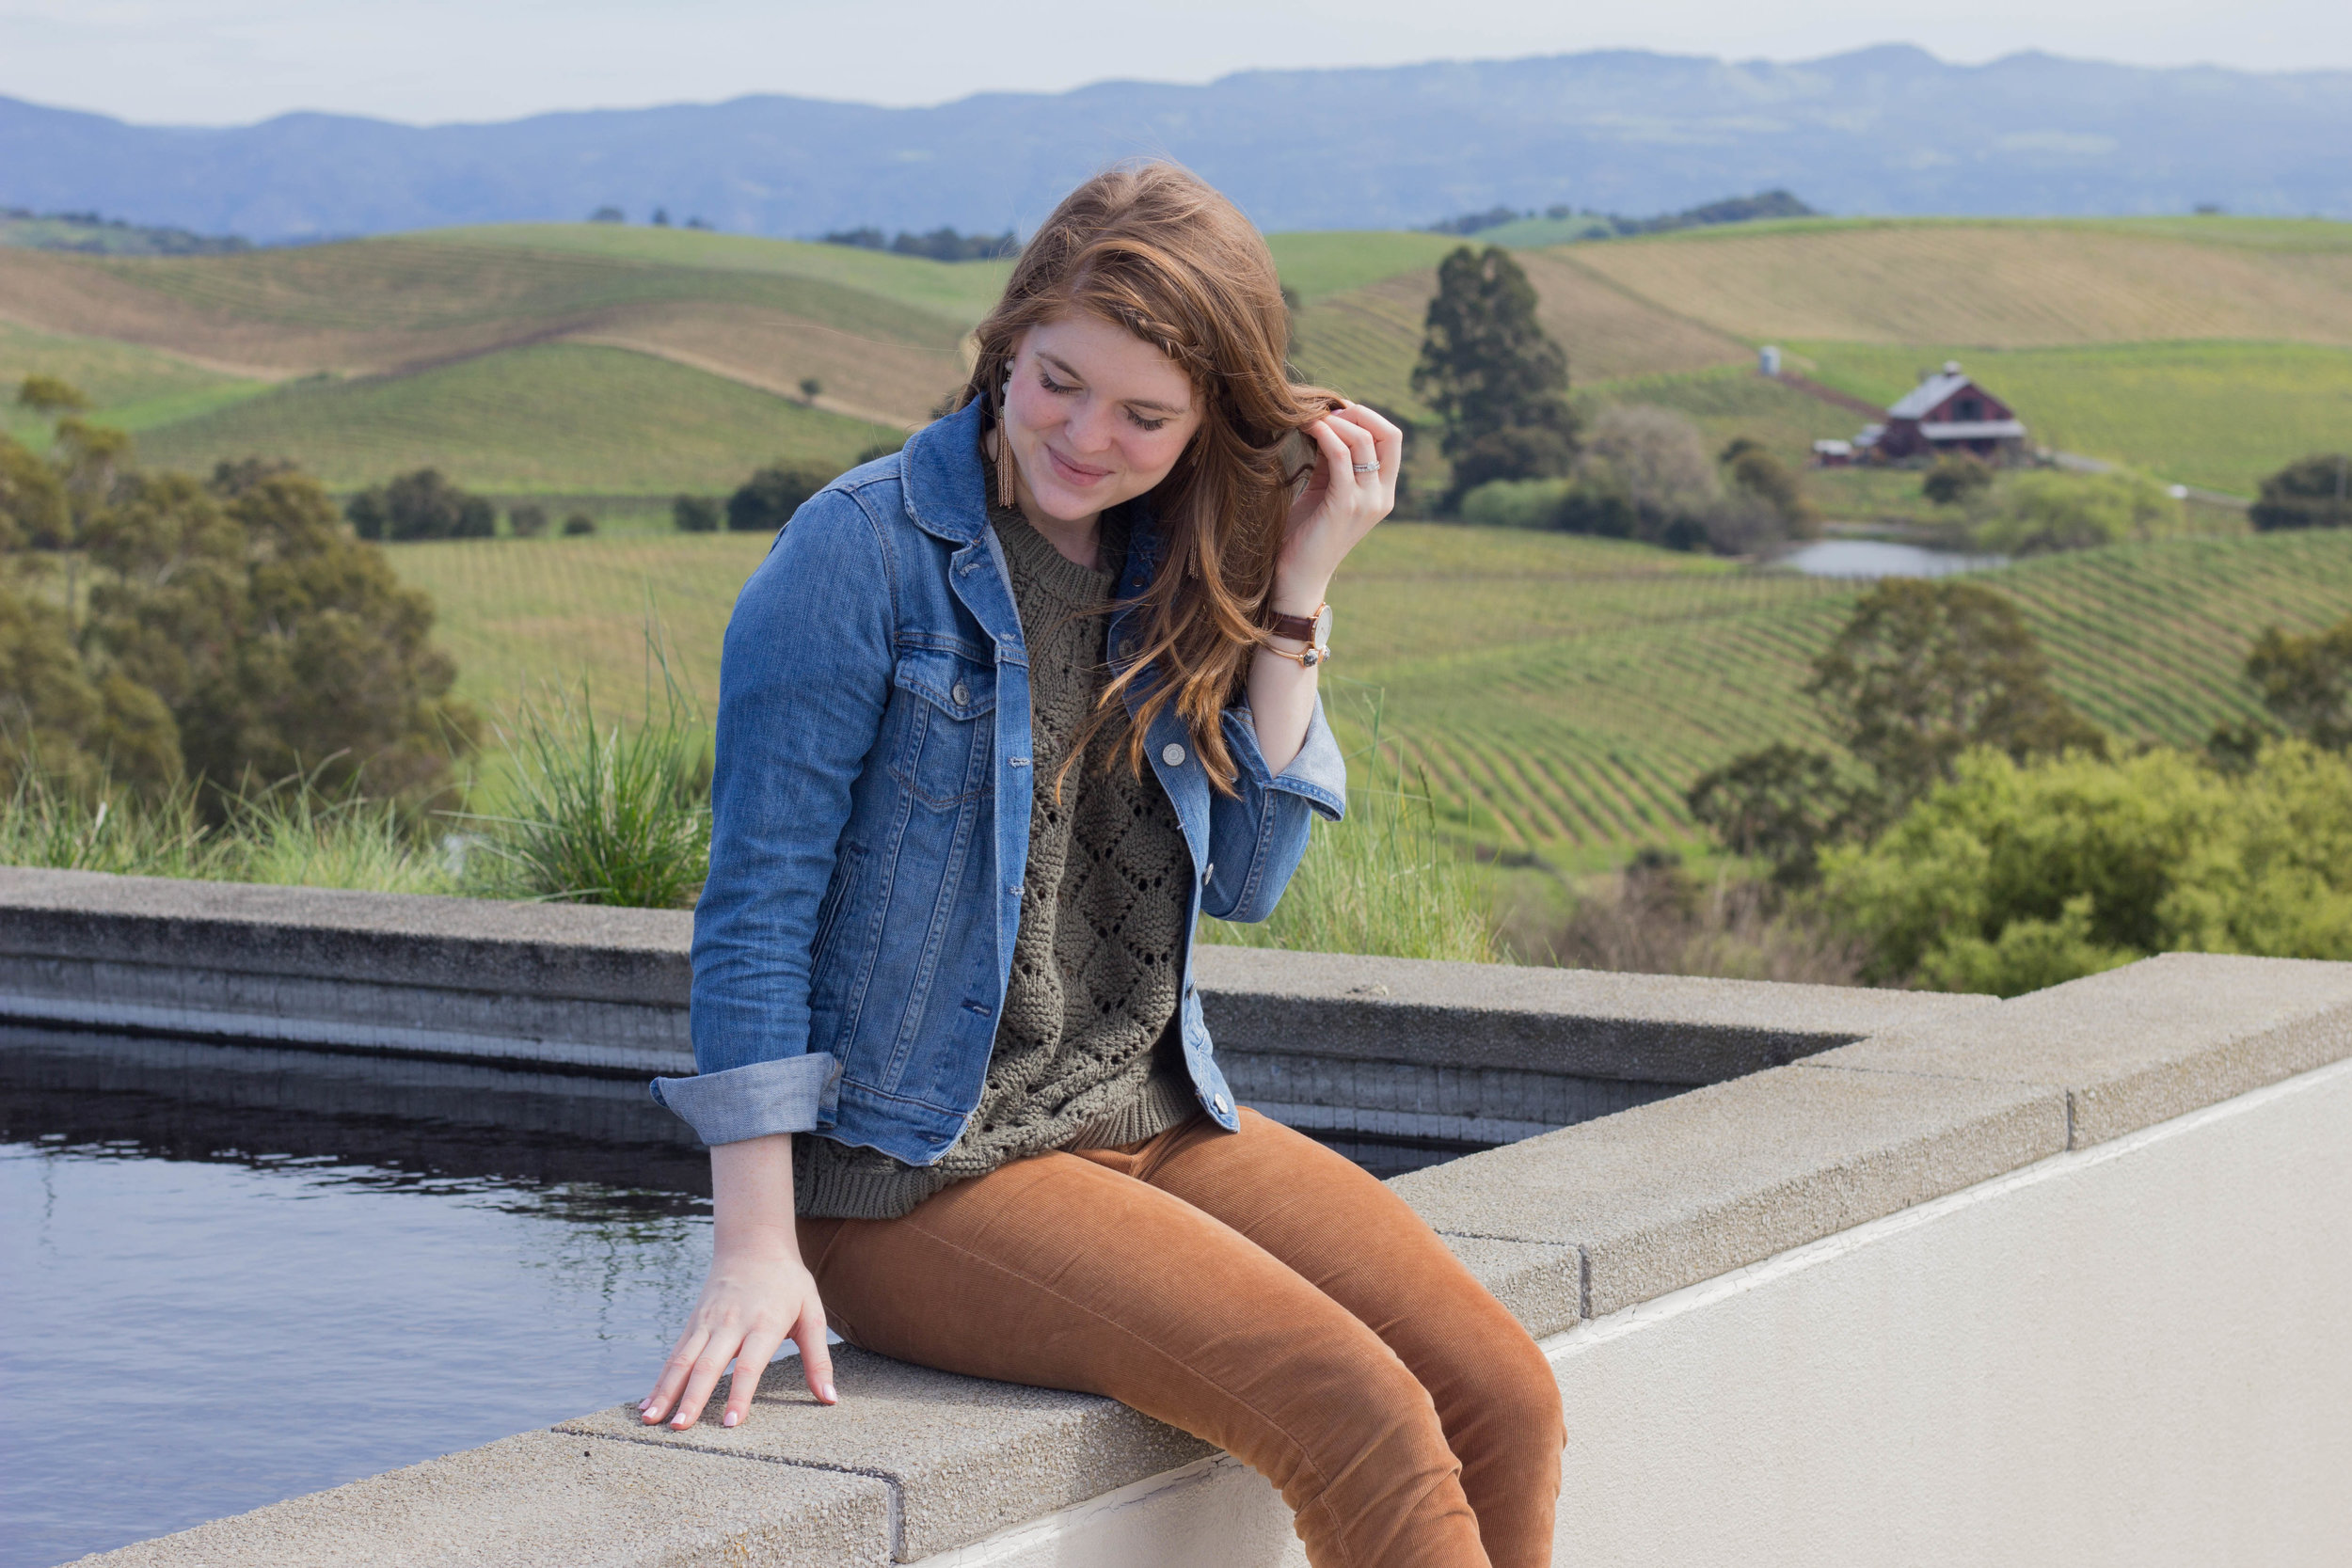 abercrombie sweater, levi's jacket, tips for wine  tasting in napa valley, sonoma, napa, visit california, wine tasting tips, san francisco, oakland,